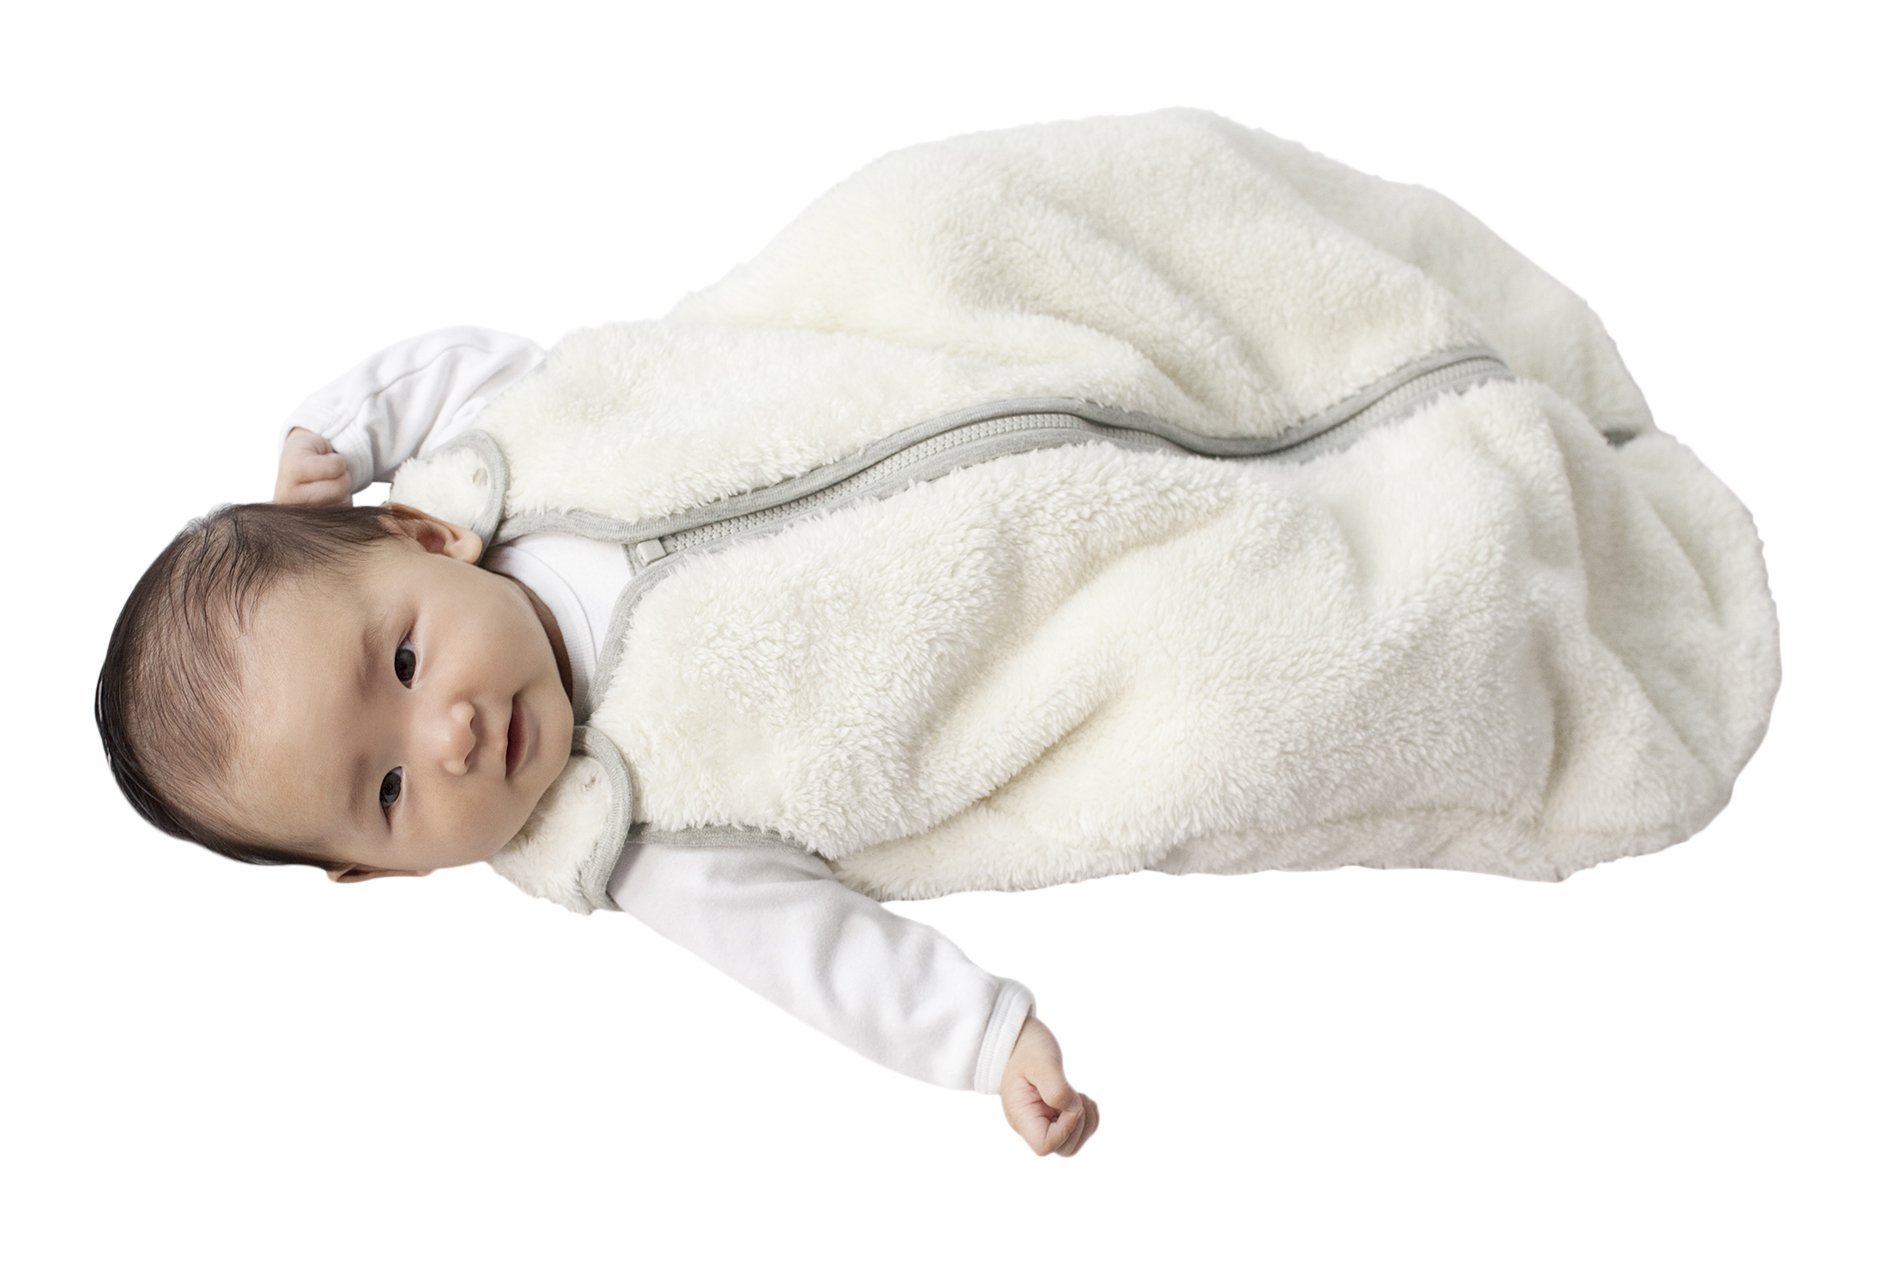 baby deedee Sleep Nest Teddy Baby Sleeping Bag, Ivory, Medium (6-18 Months) by baby deedee